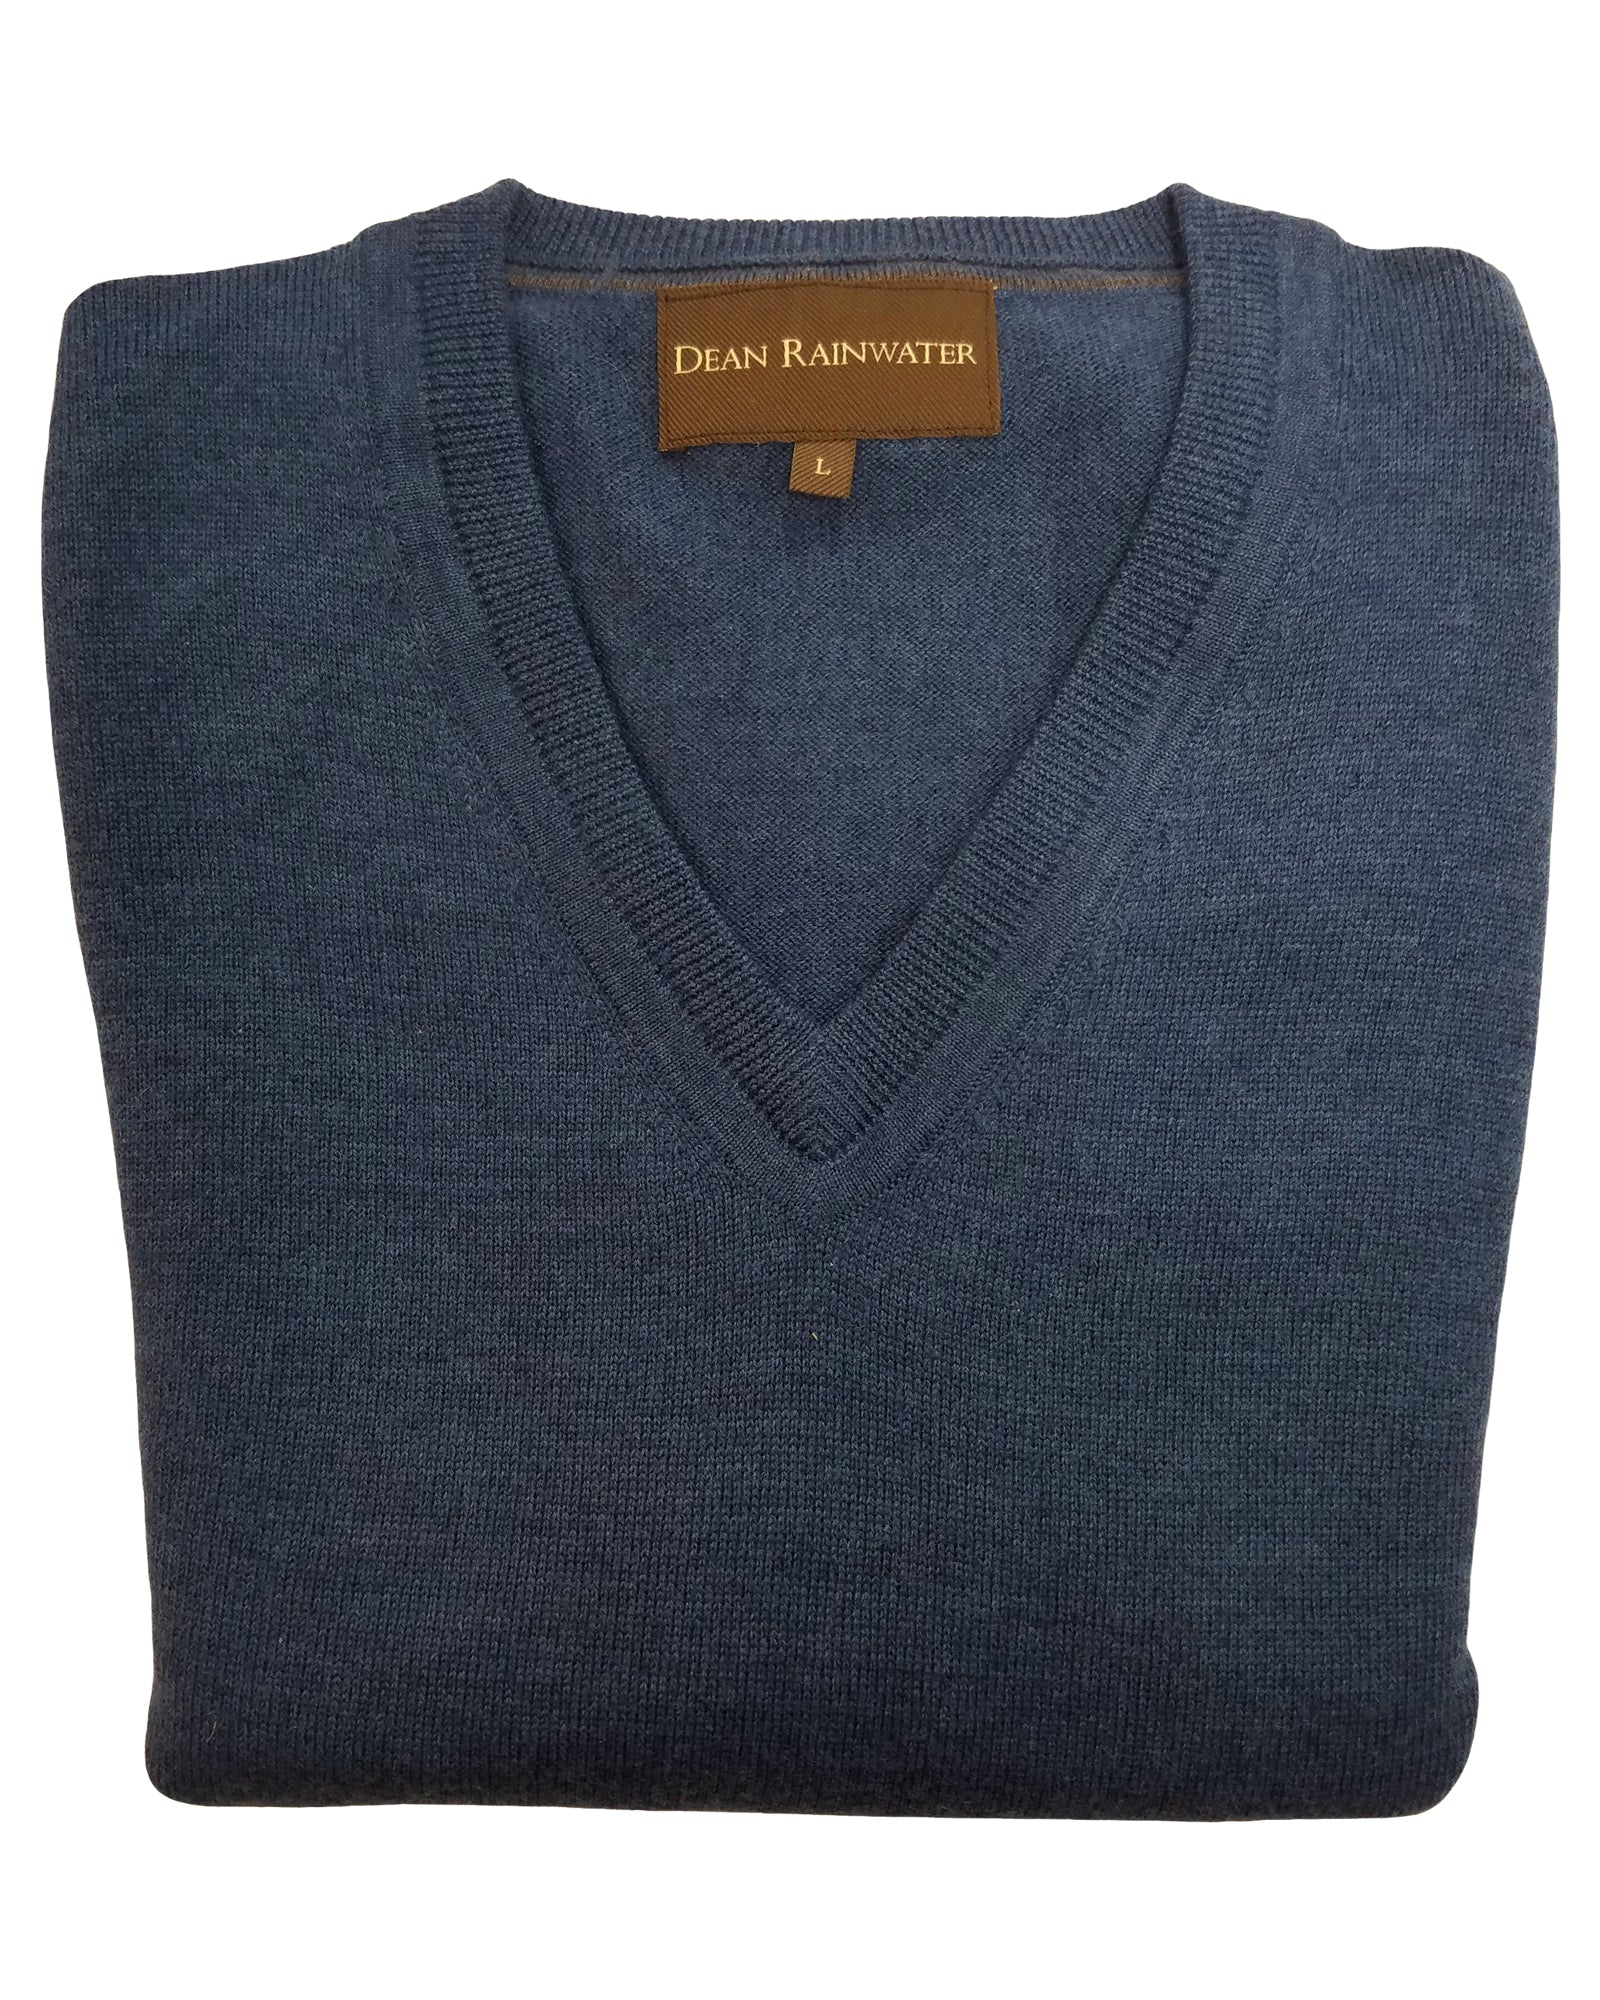 V-Neck Sweater in Atlantic Blue Extra Fine Merino Wool - Rainwater's Men's Clothing and Tuxedo Rental